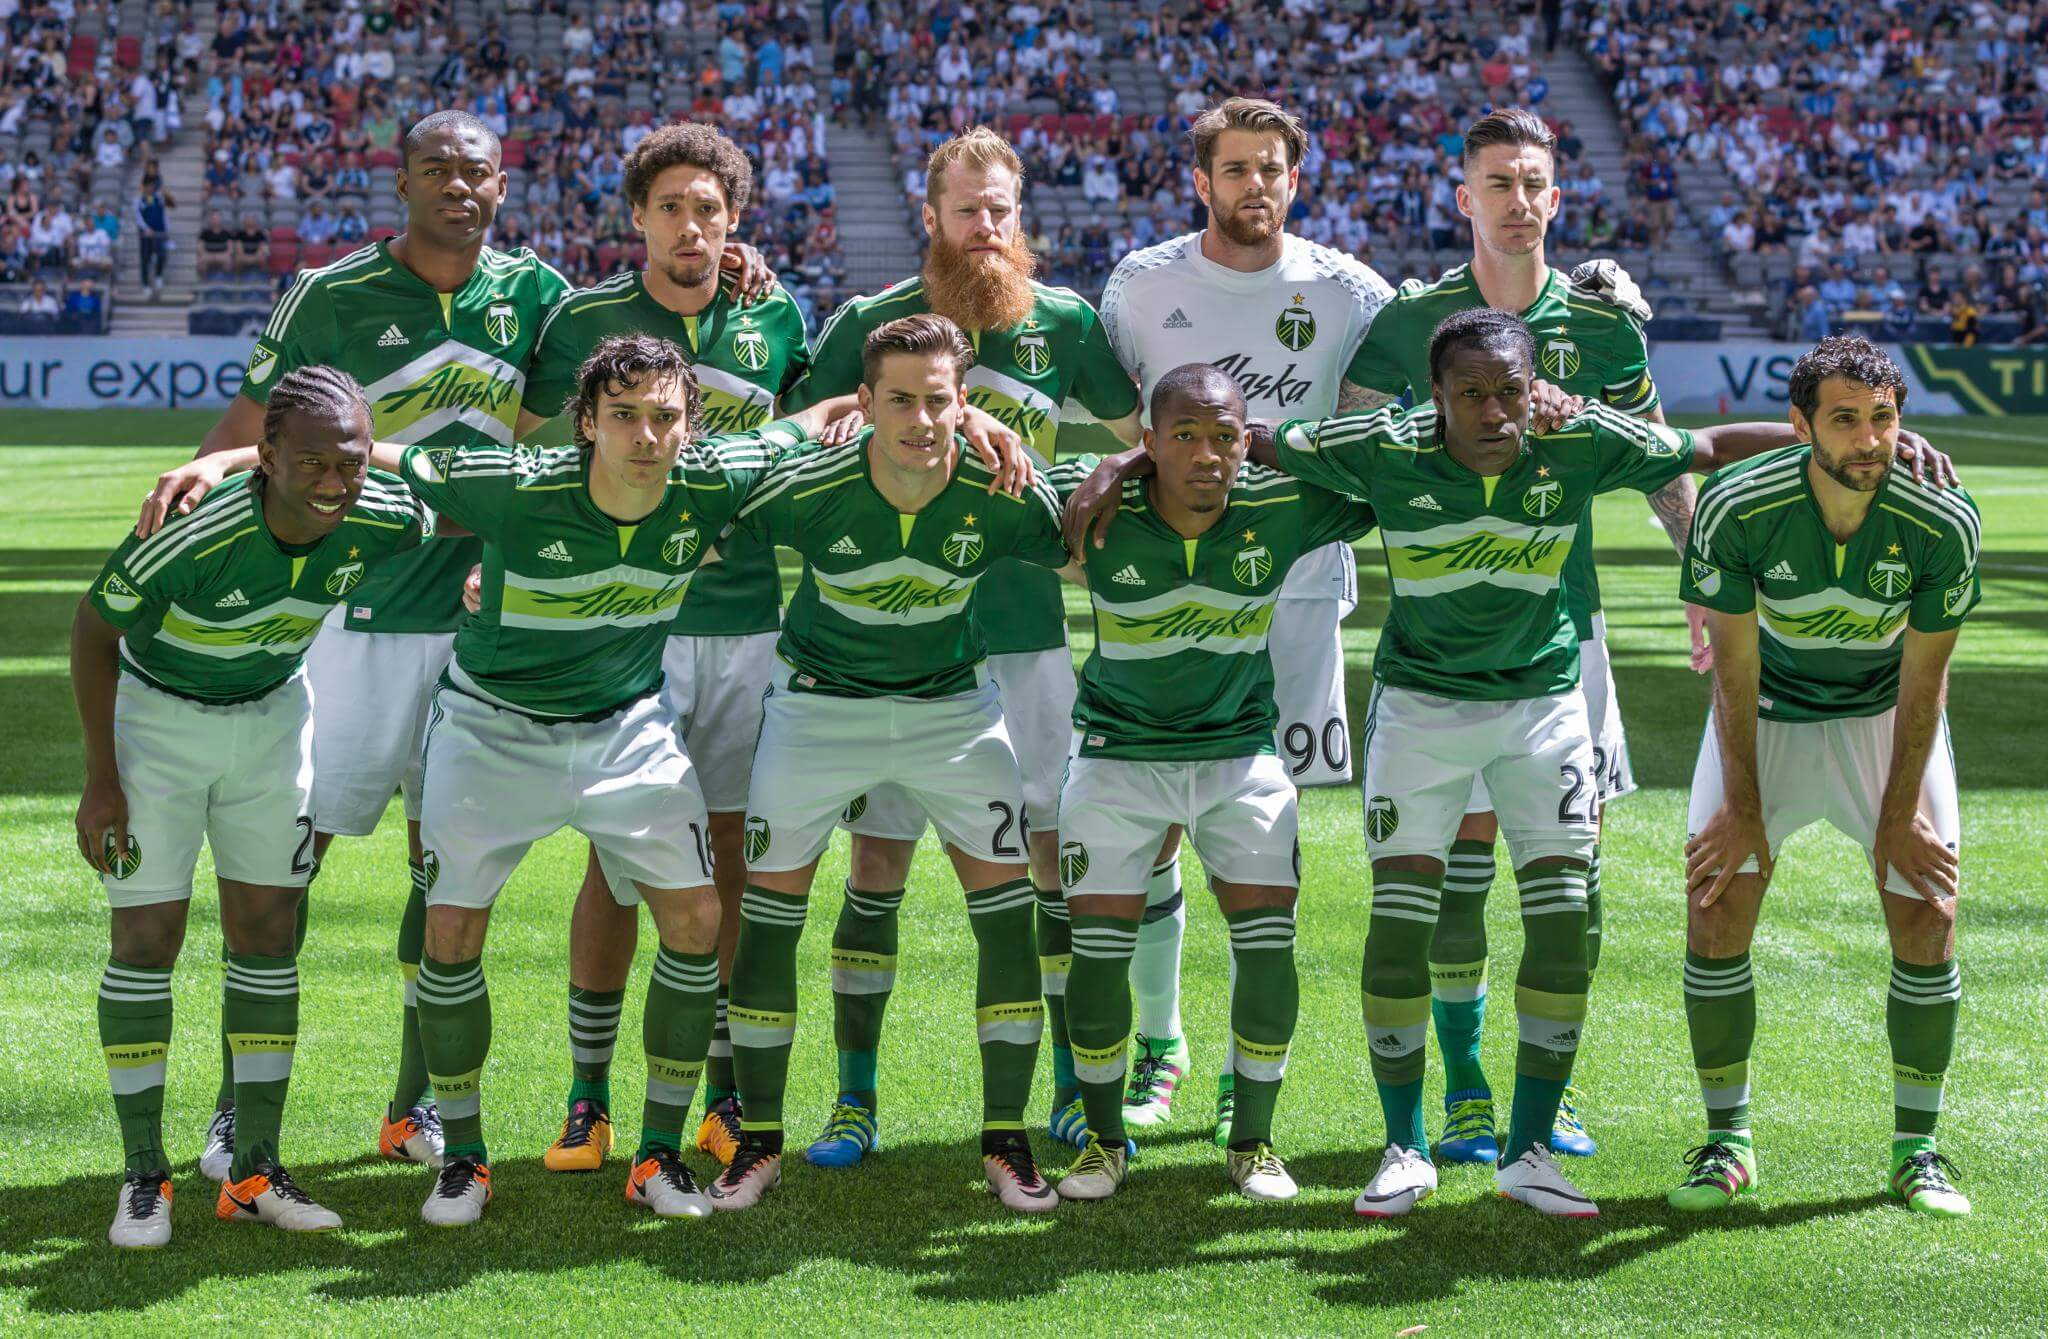 Portland Timbers soccer players